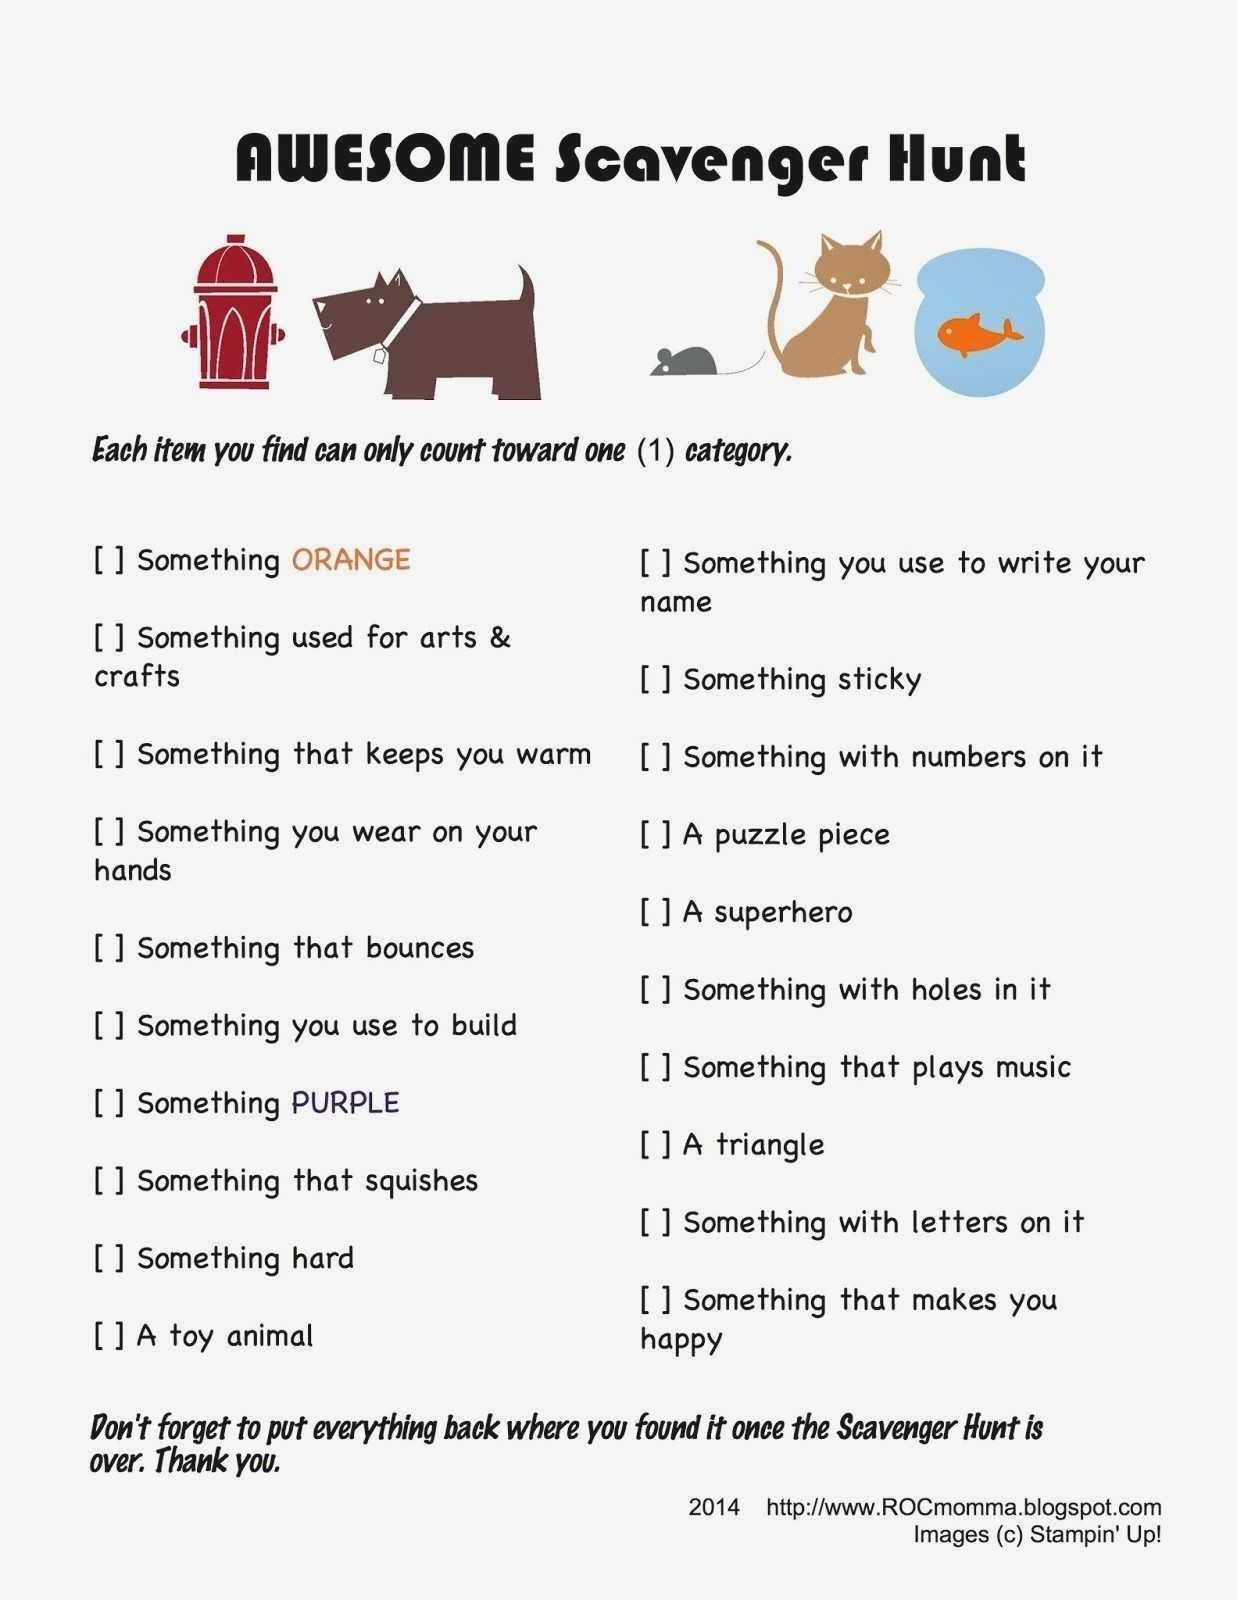 10 Amazing Ideas For A Scavenger Hunt delighted scavenger hunt ideas at home pictures inspiration home 2021